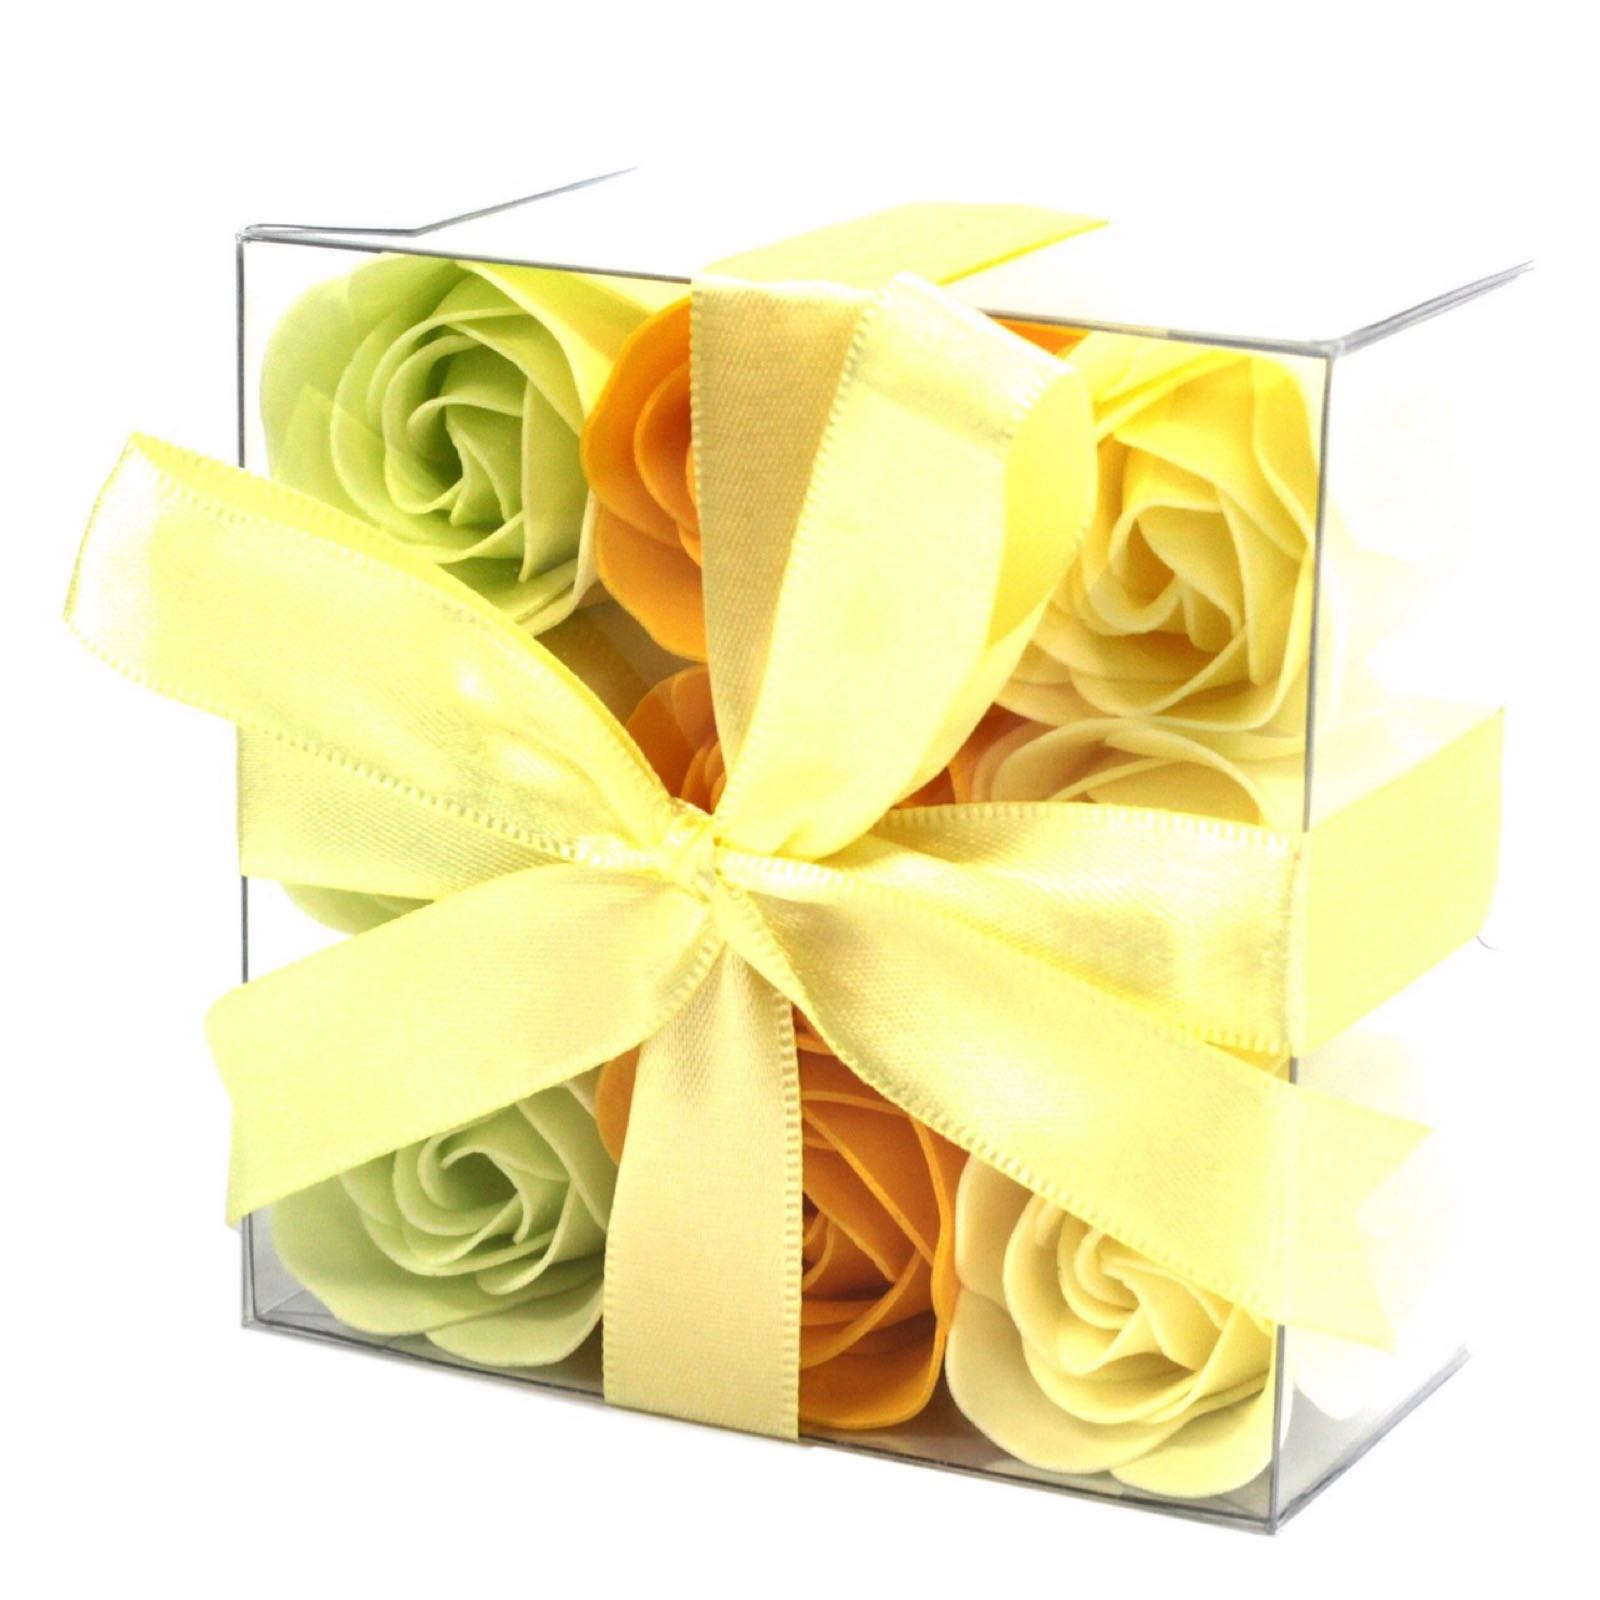 Soap Flower Box - Spring Roses (Was £4.50)